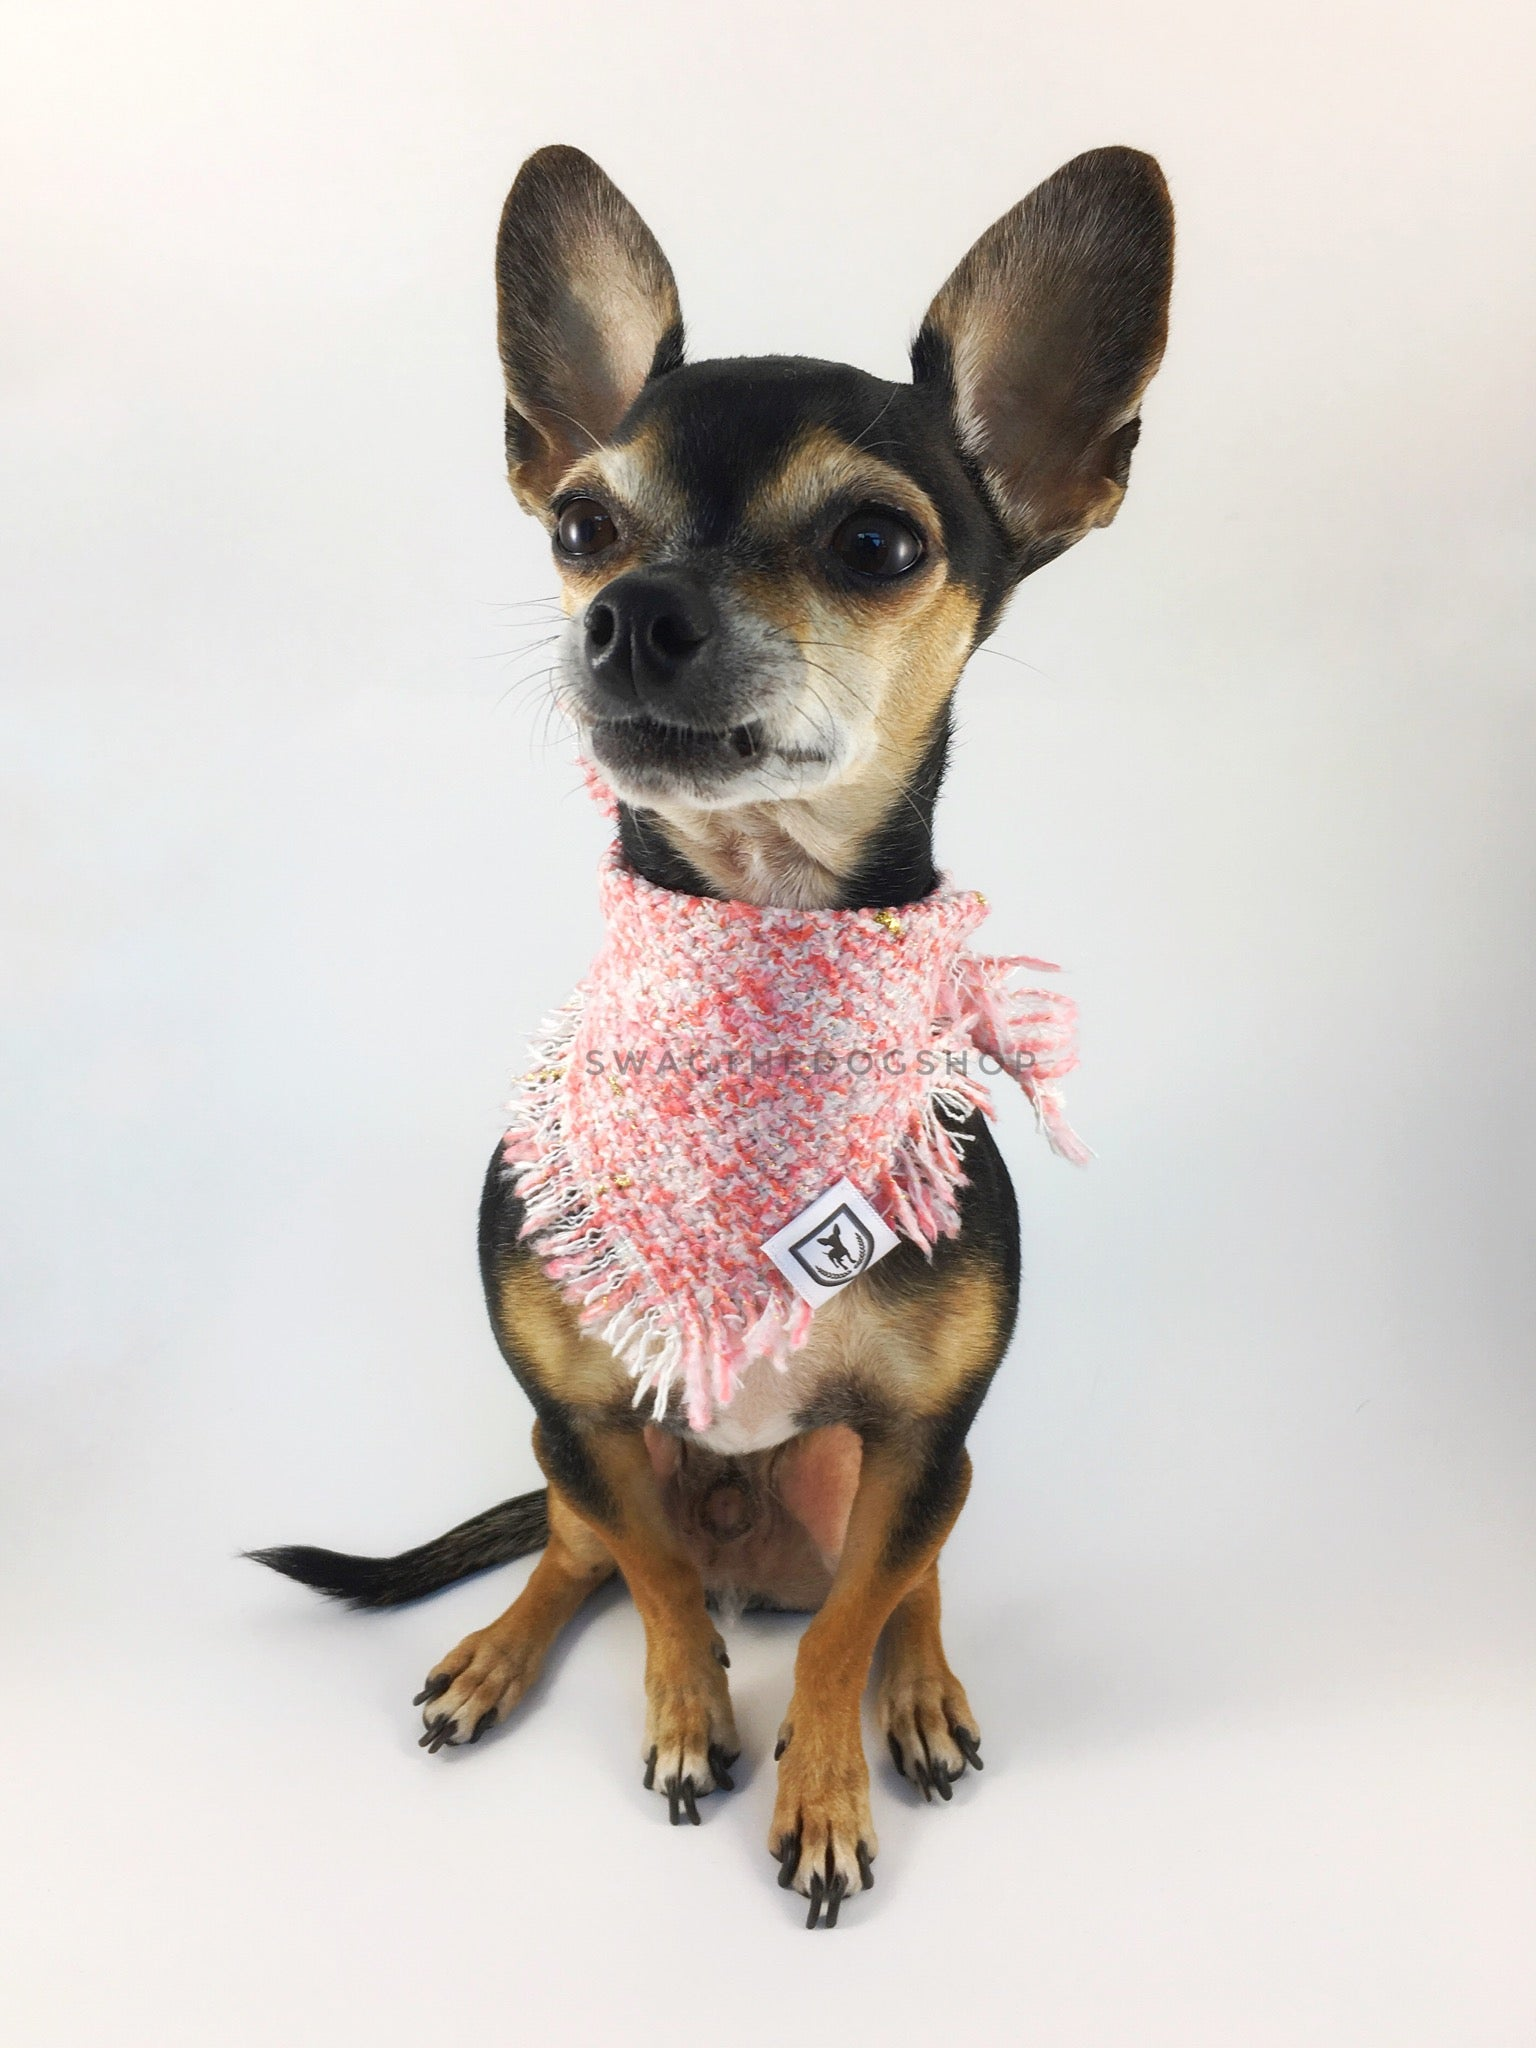 Fairy Pink Tweed Swagdana with Frayed Edges - Full Front View of Cute Chihuahua Wearing Swagdana. Dog Bandana. Dog Scarf